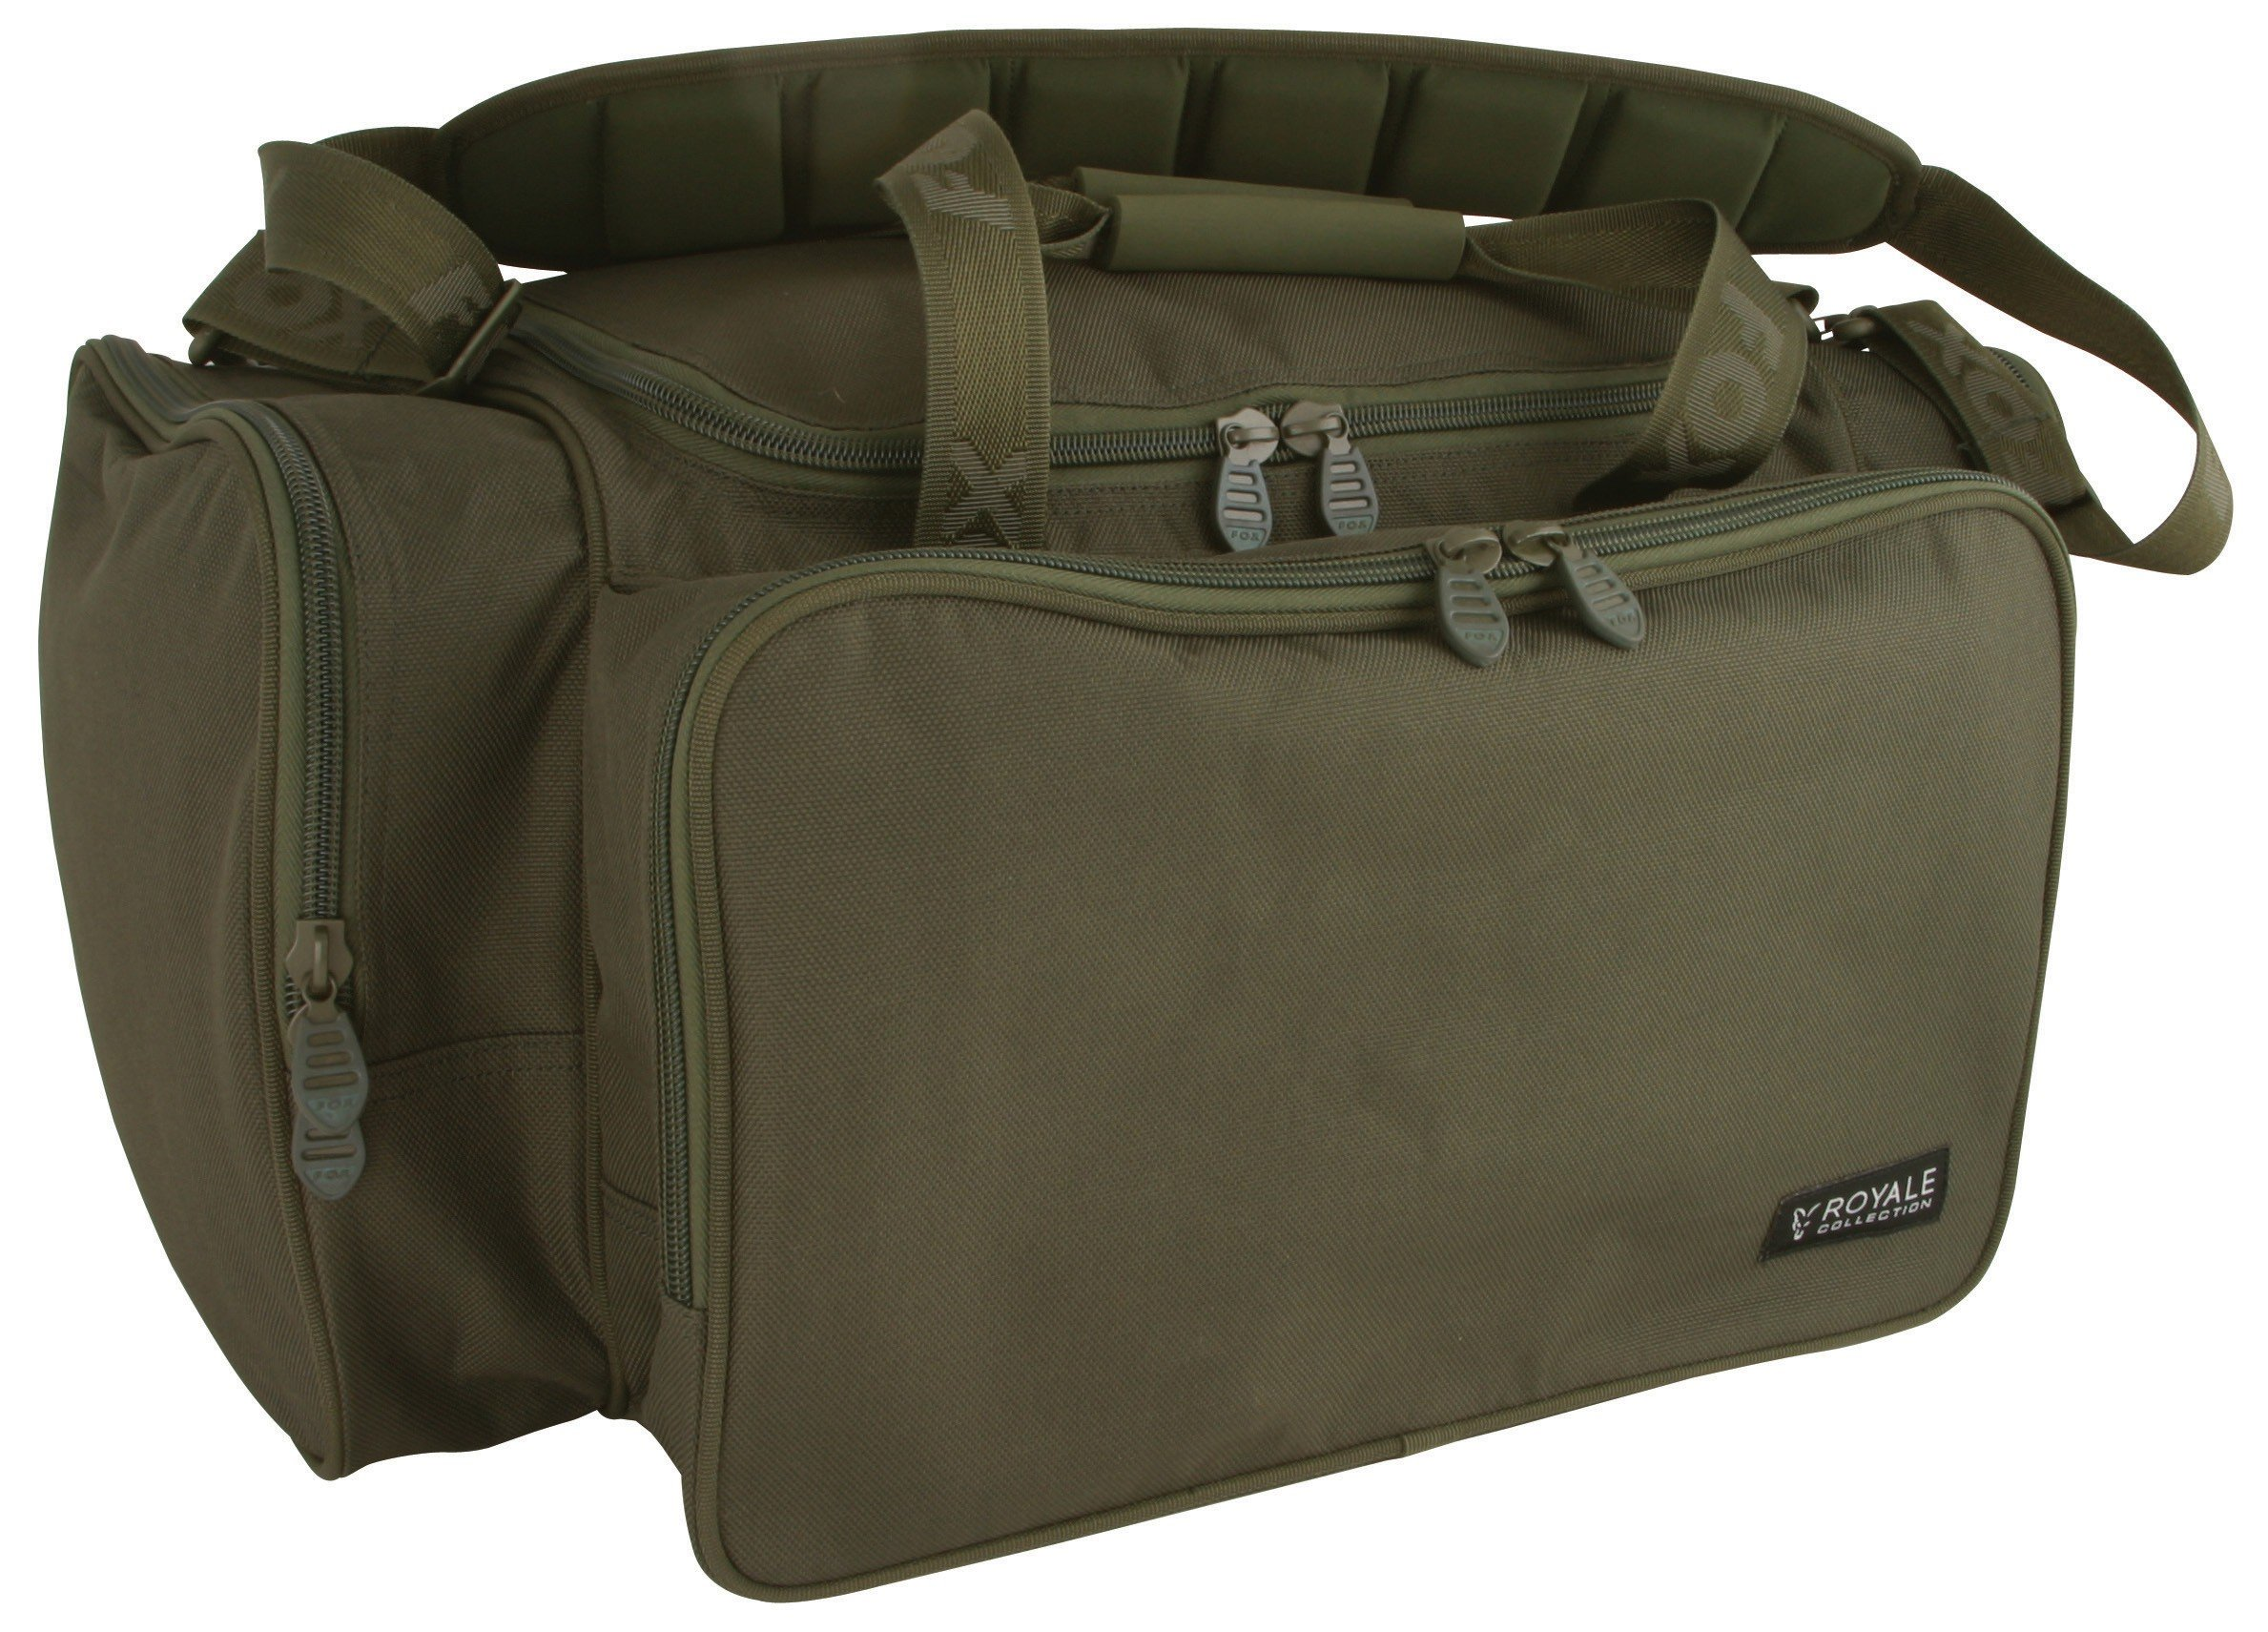 Fox - Royale Carryall Large